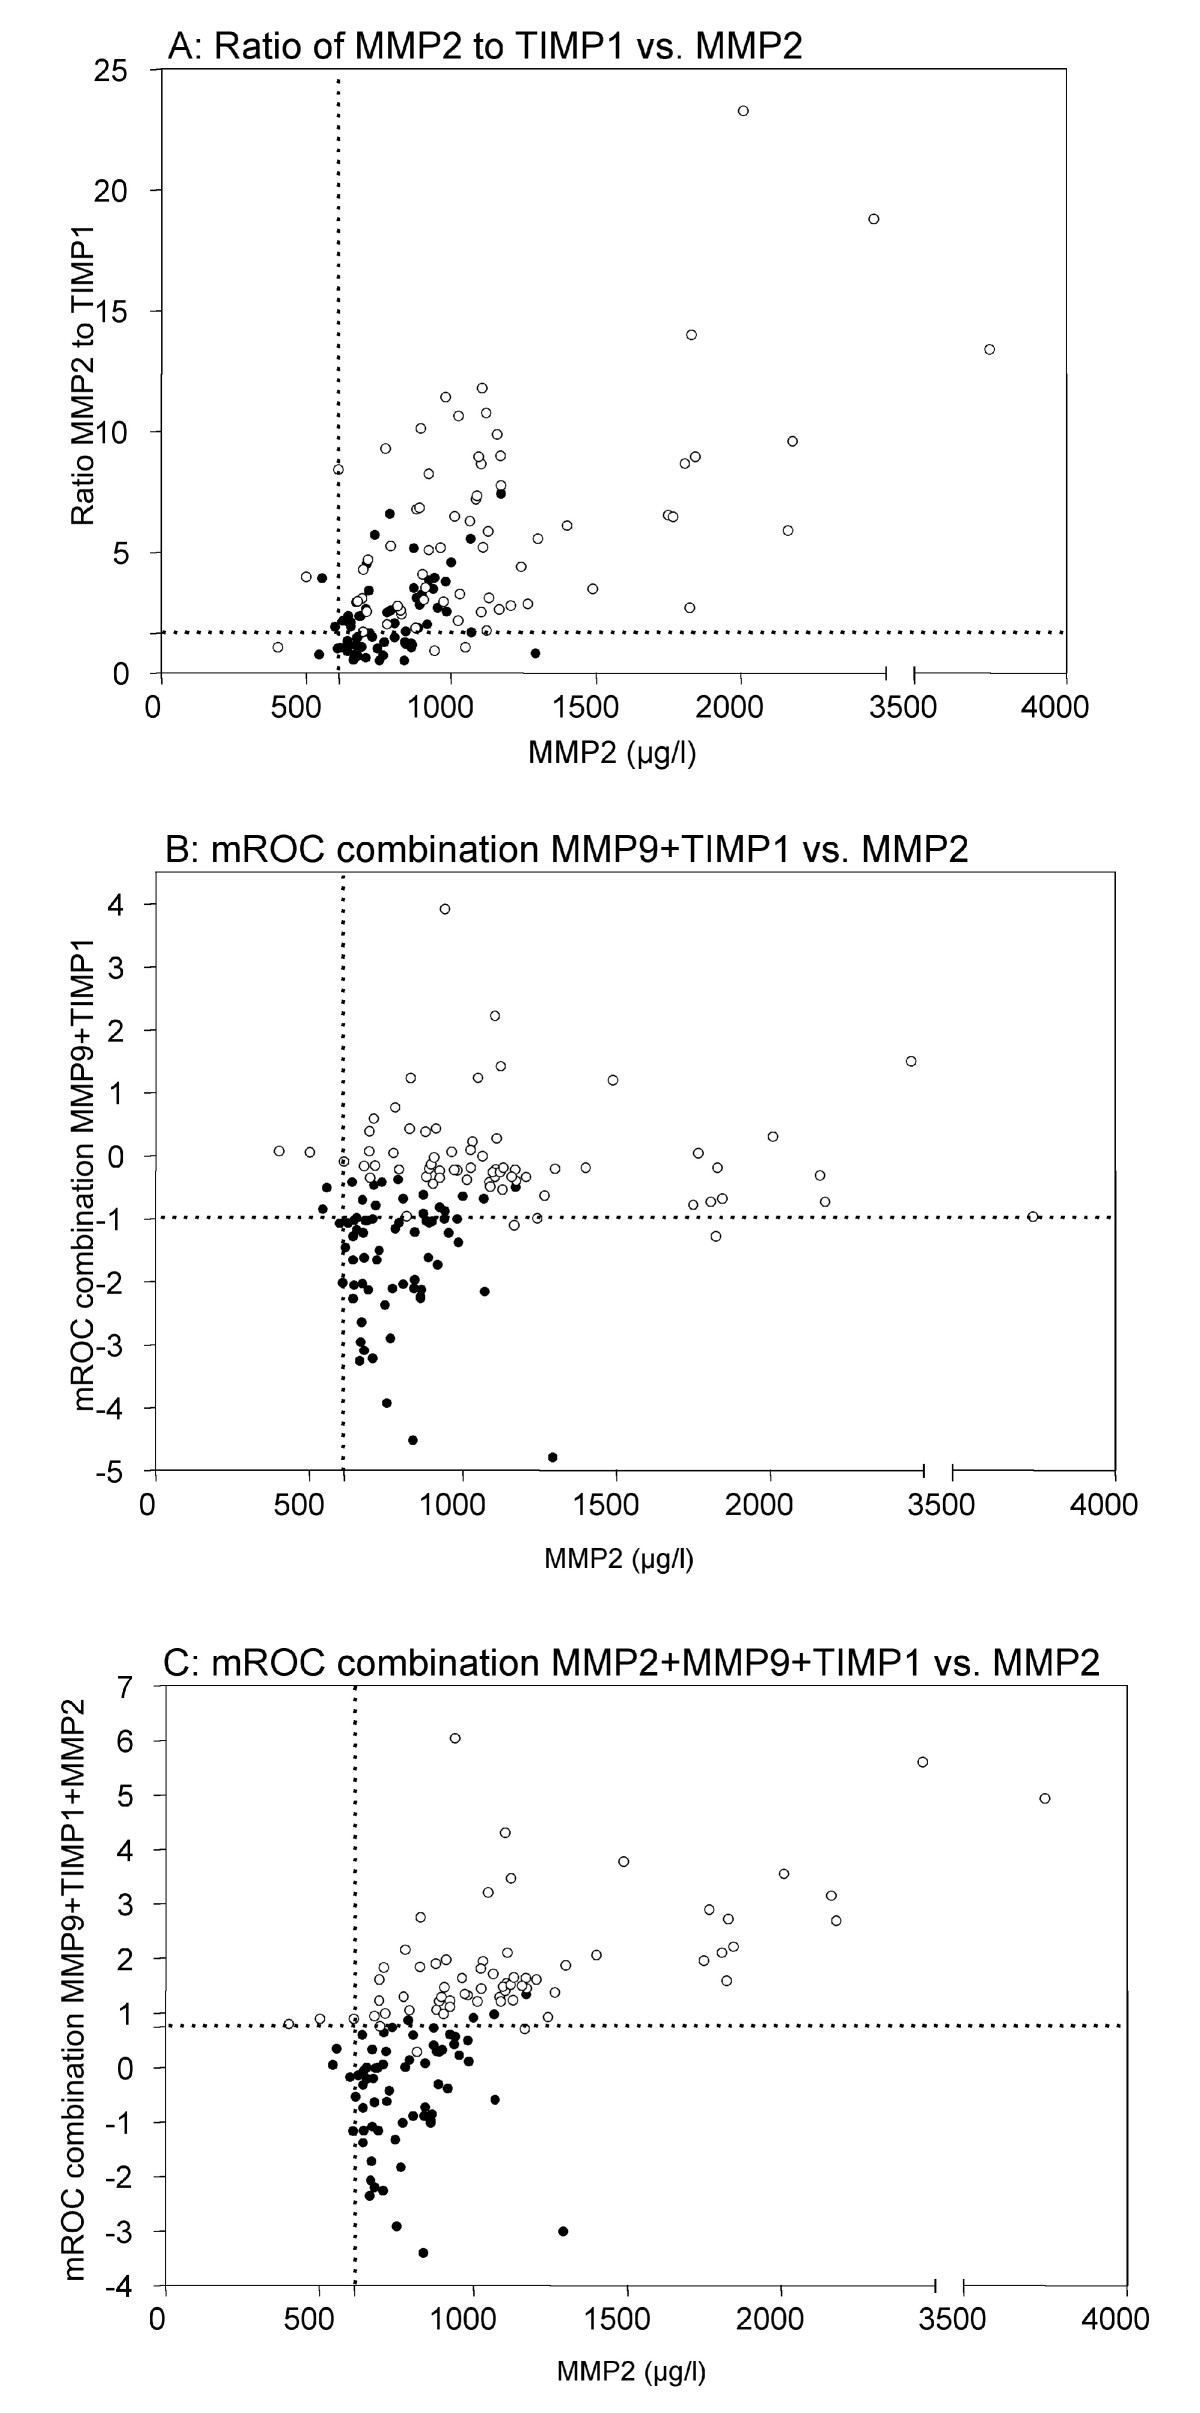 http://static-content.springer.com/image/art%3A10.1186%2F1471-2490-6-19/MediaObjects/12894_2005_Article_74_Fig3_HTML.jpg